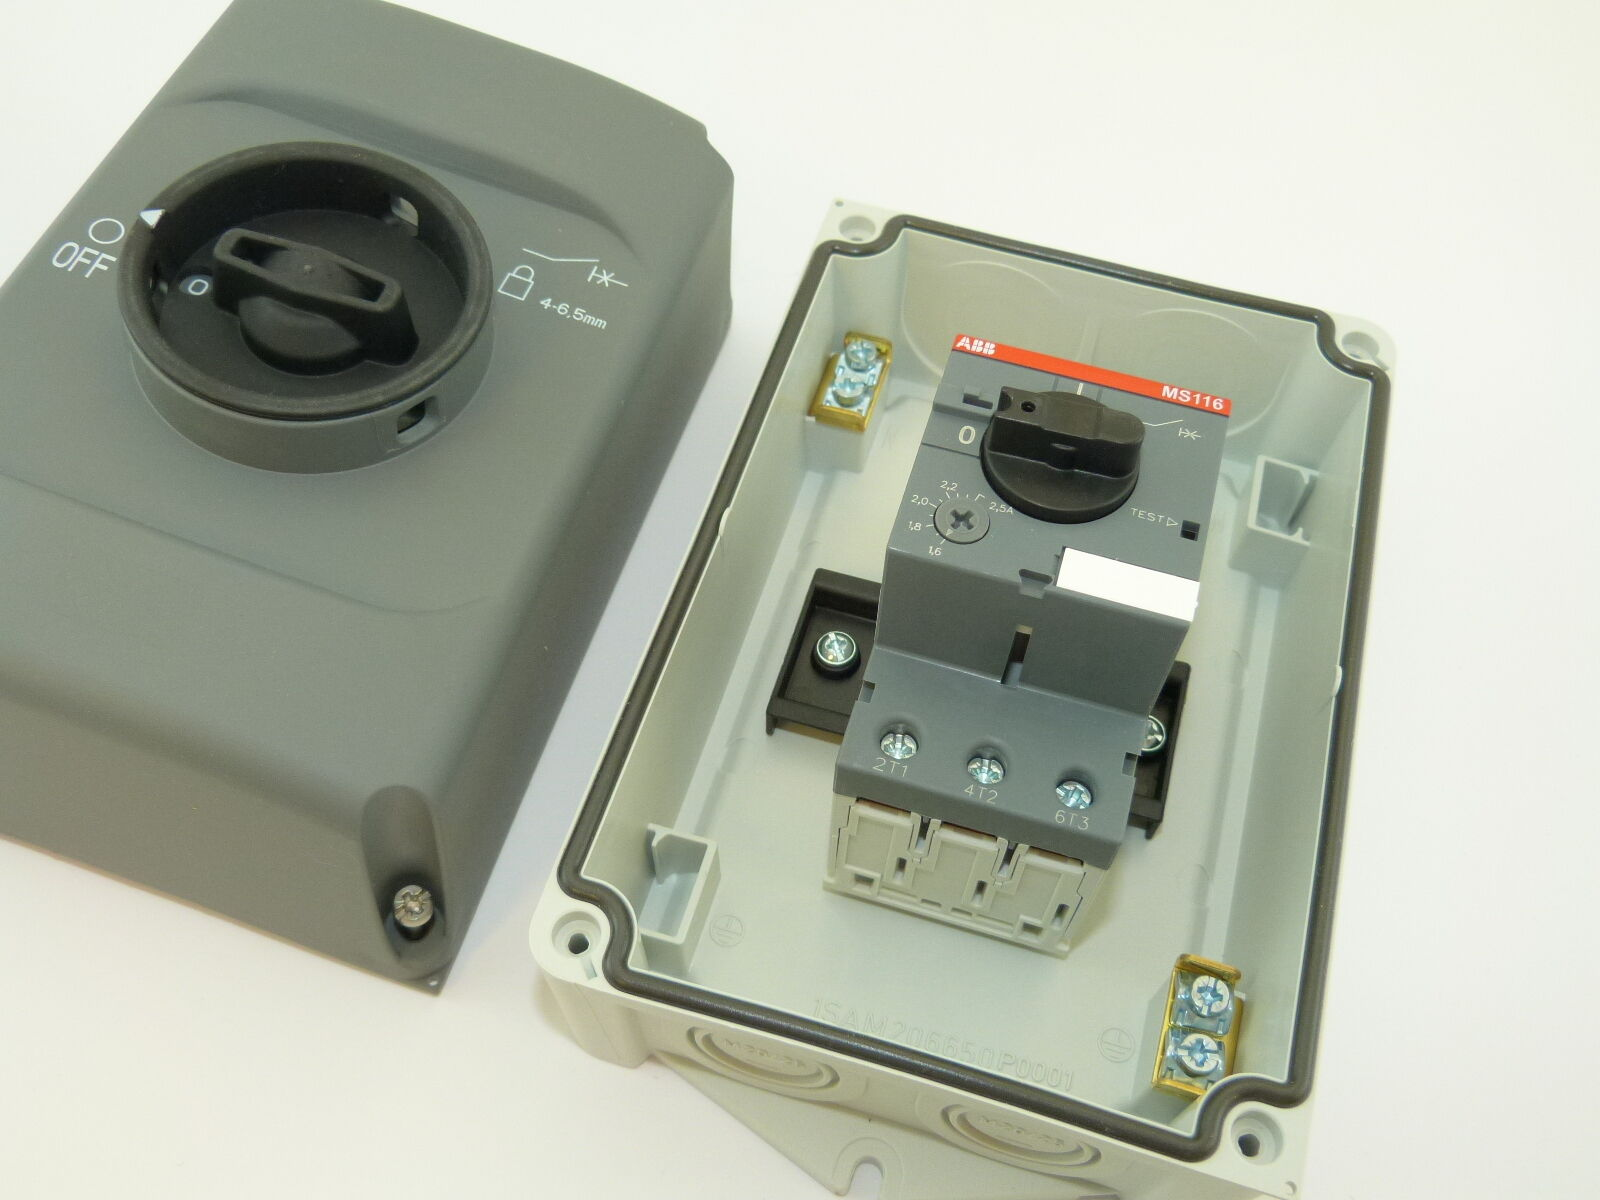 ABB IB132-G Enclosure For Use With MS116 and MS132 Series Manual Motor Starters